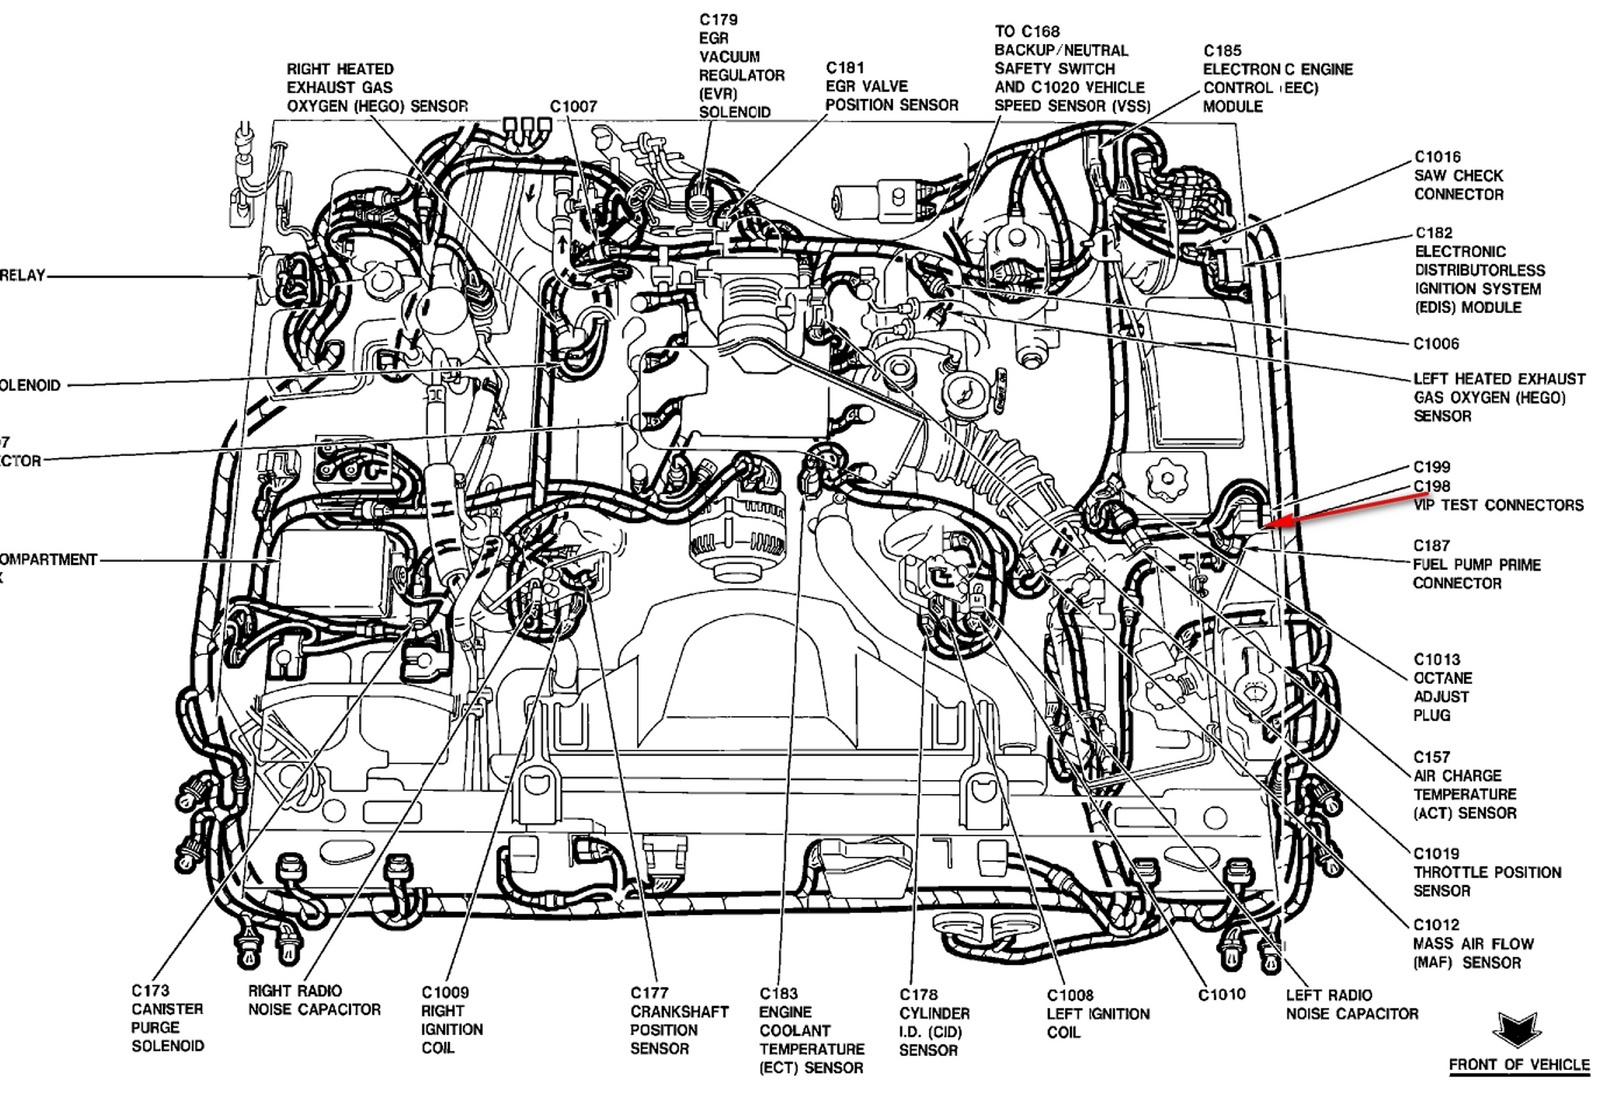 1989 mercury grand marquis engine diagram